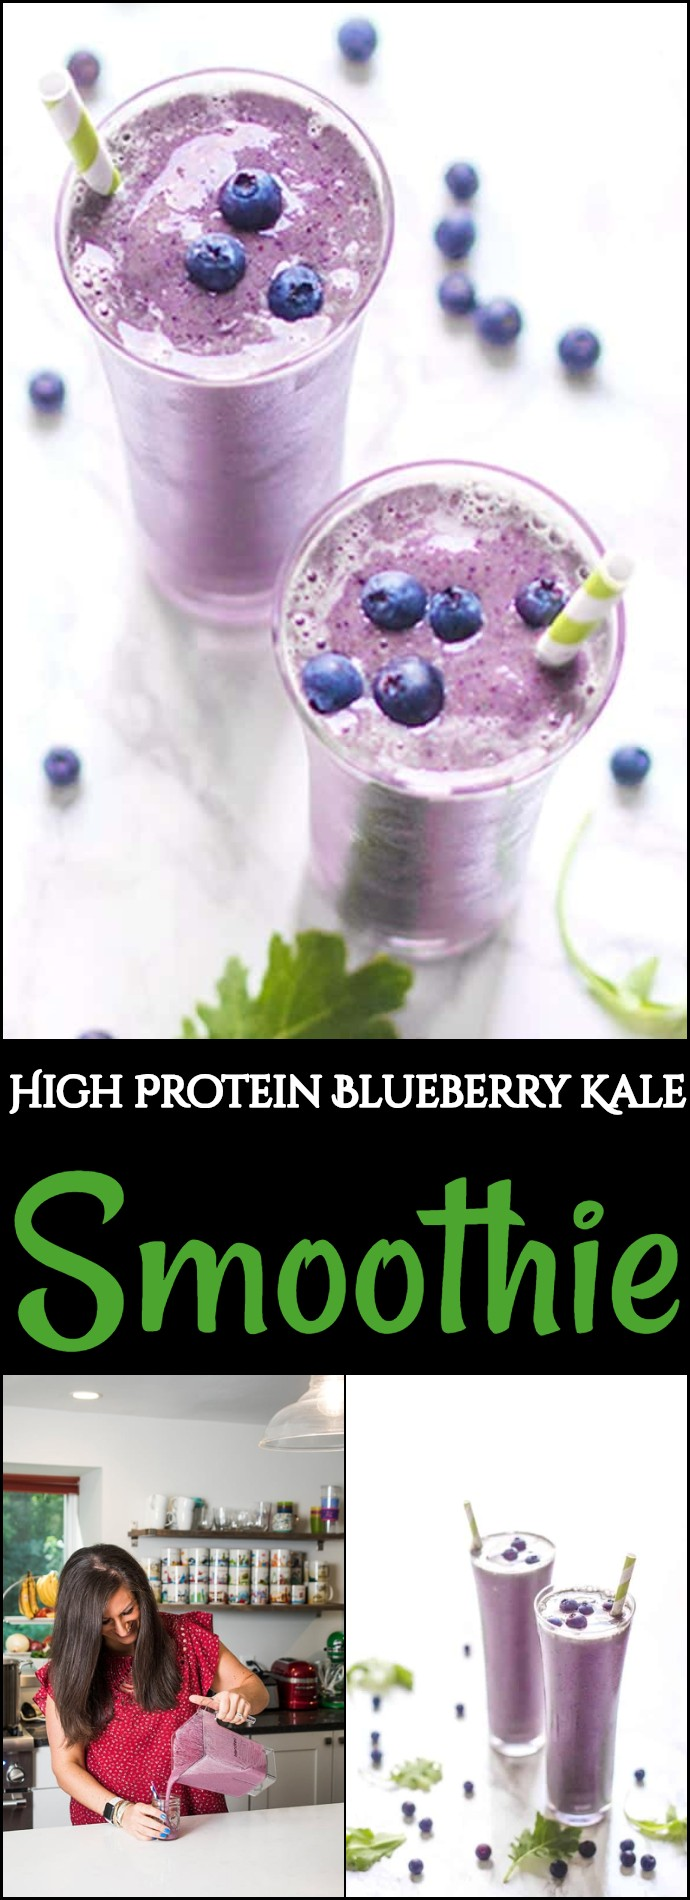 High Protein Blueberry Kale Smoothie